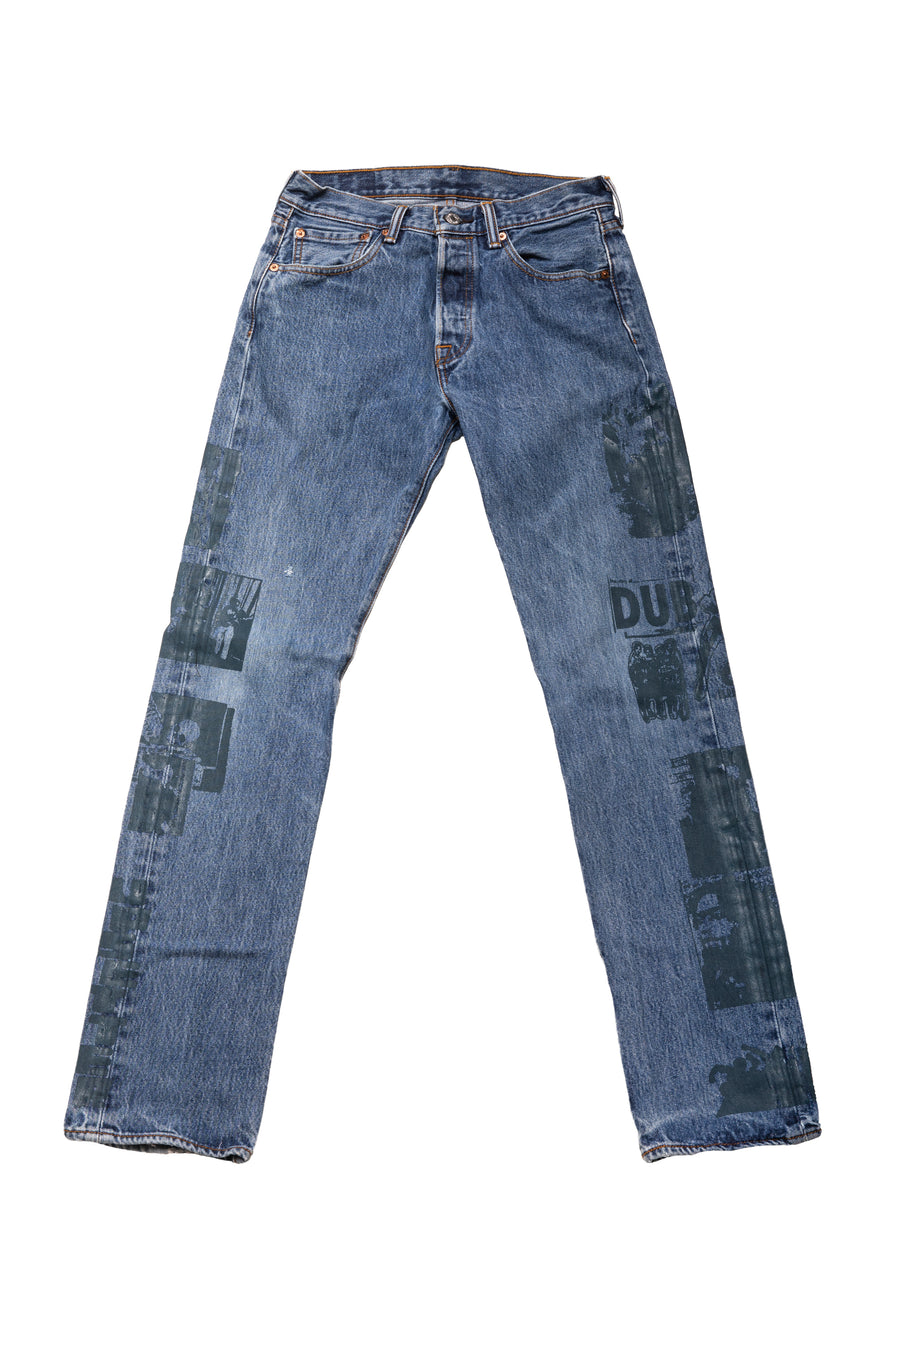 Hand Printed Upsetter Jeans /  Size 28 x 32